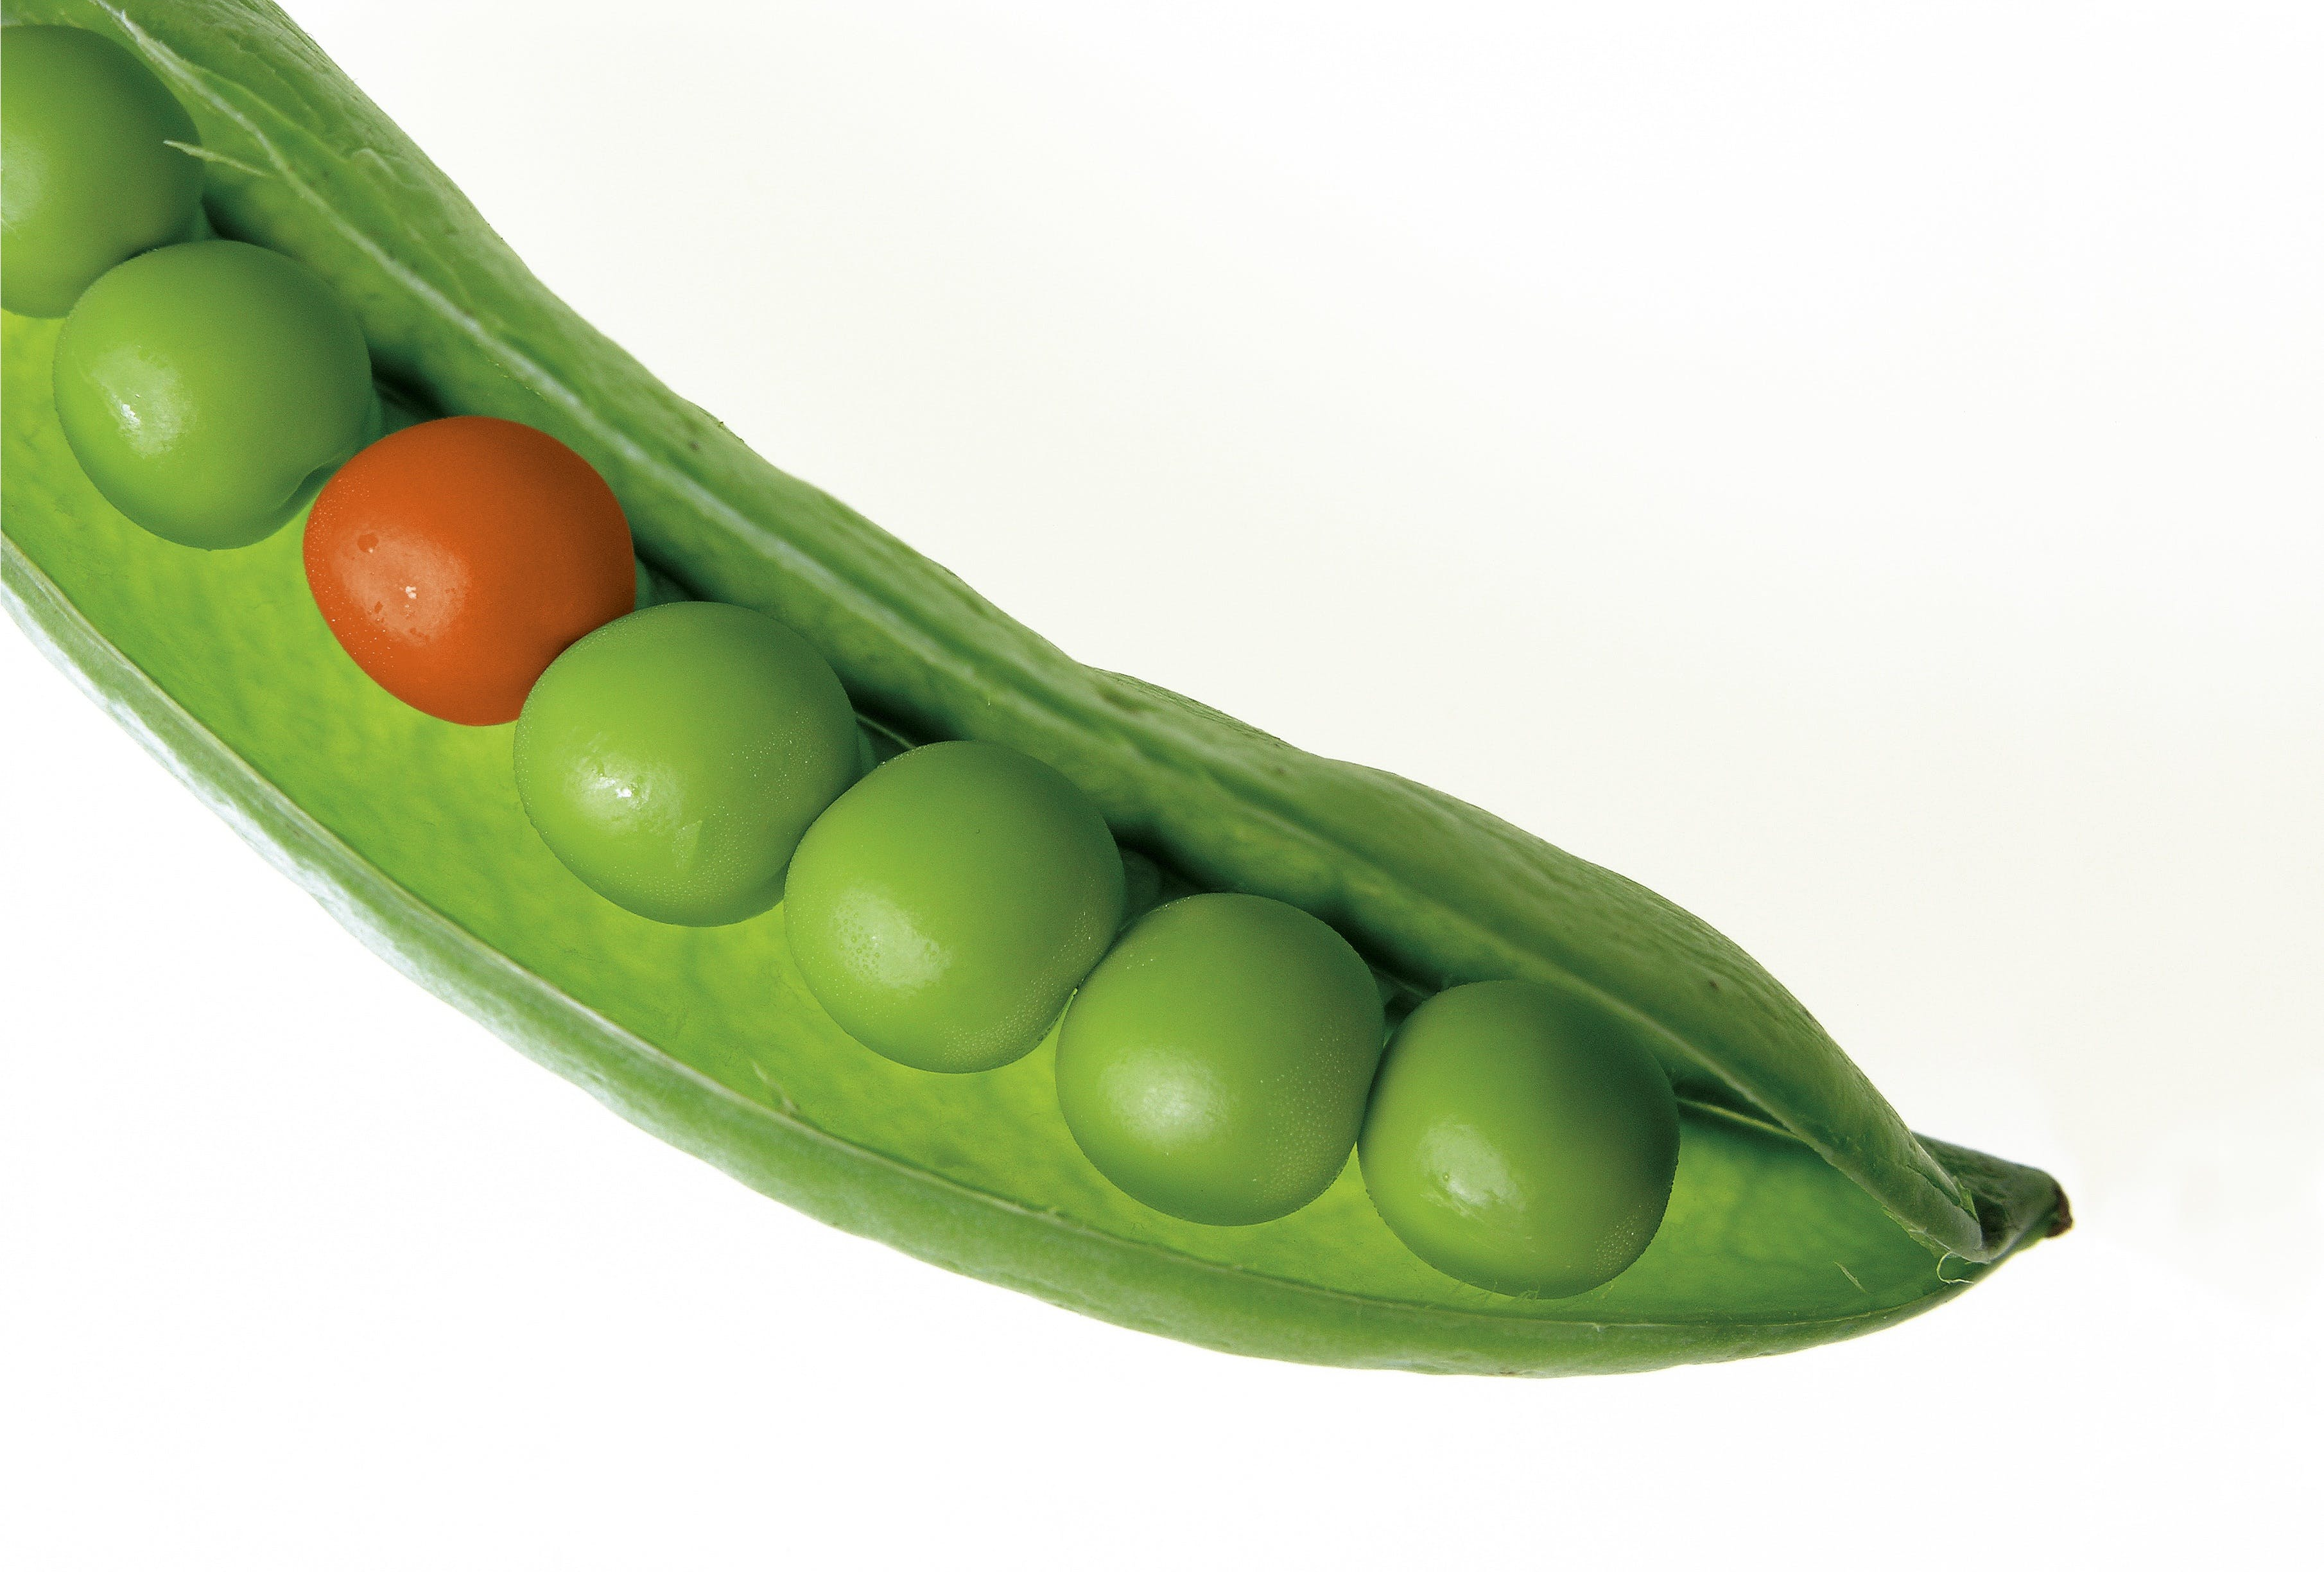 Close Up Photography of Green Pea Pod